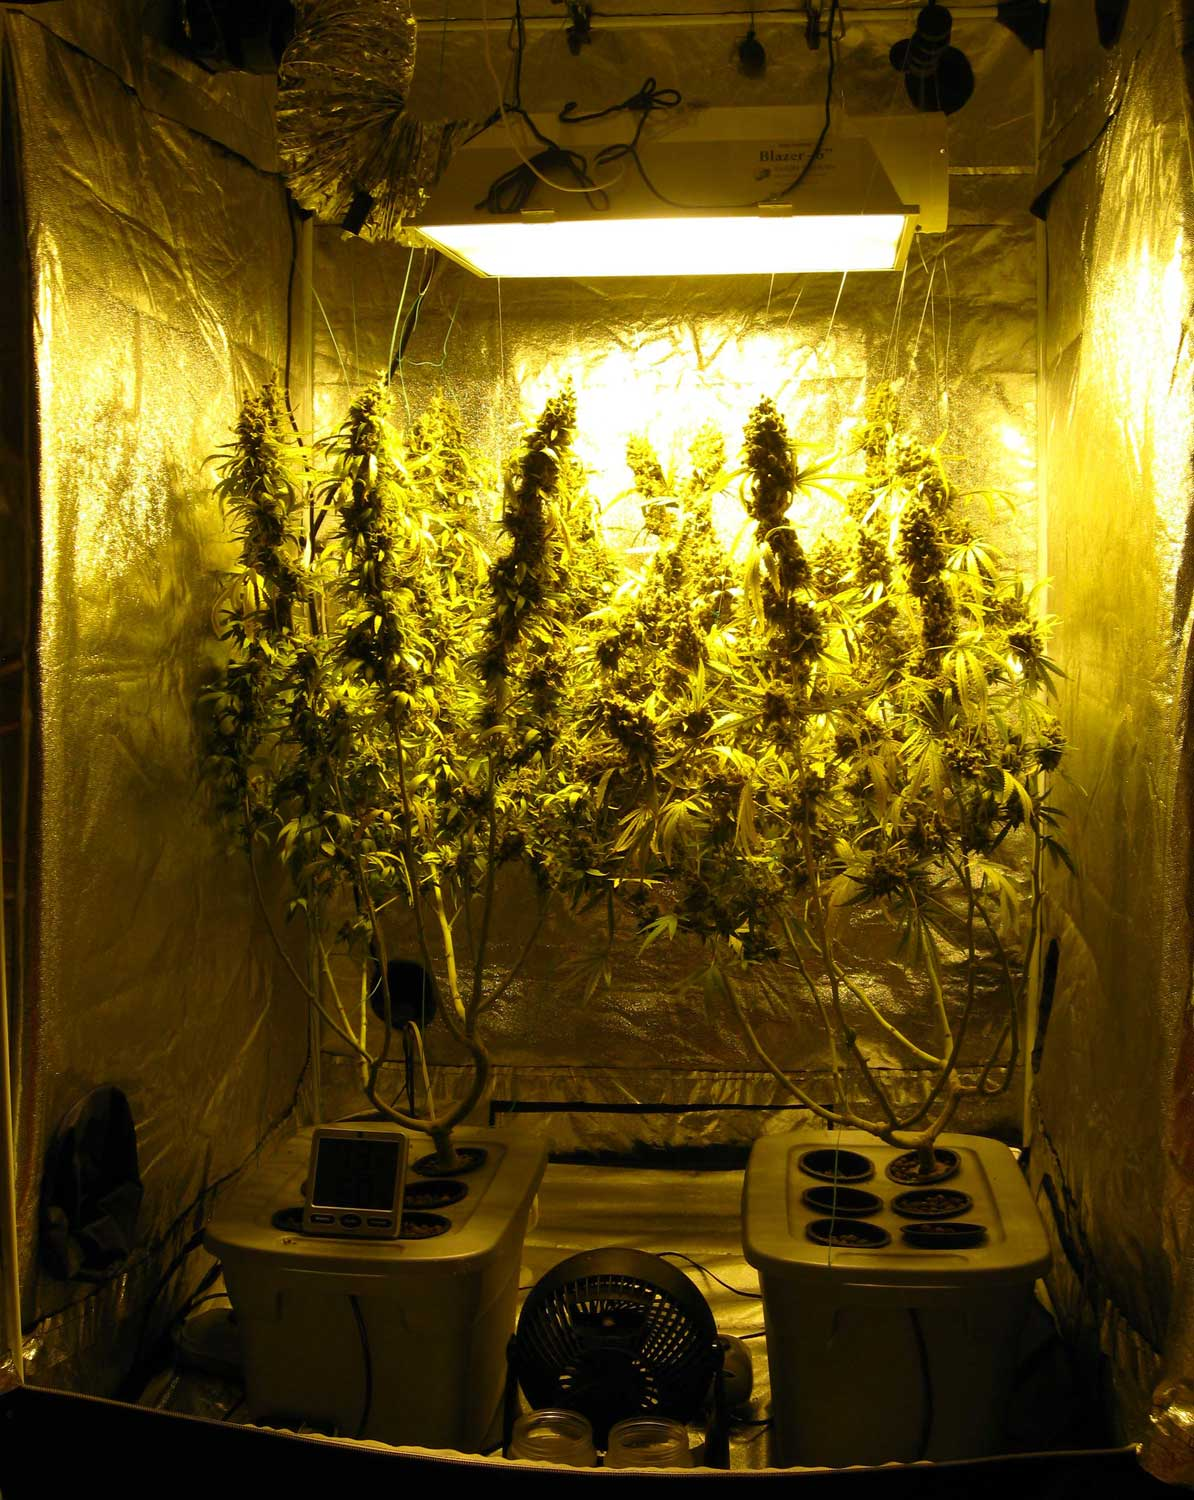 A view of the cannabis grow tent on harvest day! & 600W Hydroponic Grow Journal - 23.09 oz Harvest! | Grow Weed Easy